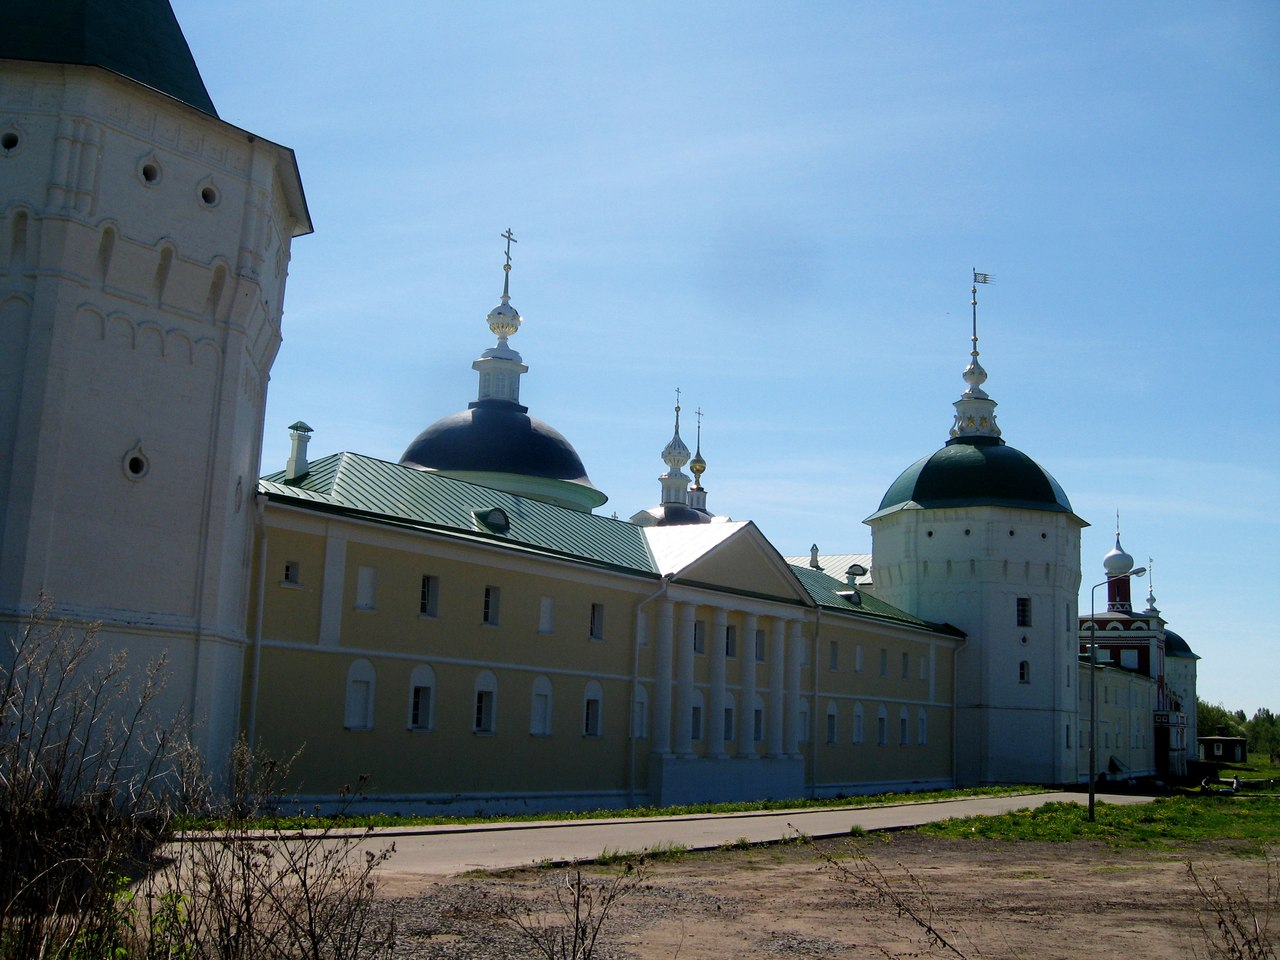 Nikolo-Peshnoshsky monastery. Another fortress of the disciples of Sergius of Radonezh, a monastery, a very, monastery, a tower, outside, through, a monastery,monasteries, sides, fortresses, because, Radonezh, walls, architecture, fortress, tower, Sergius, Next, simple, towers